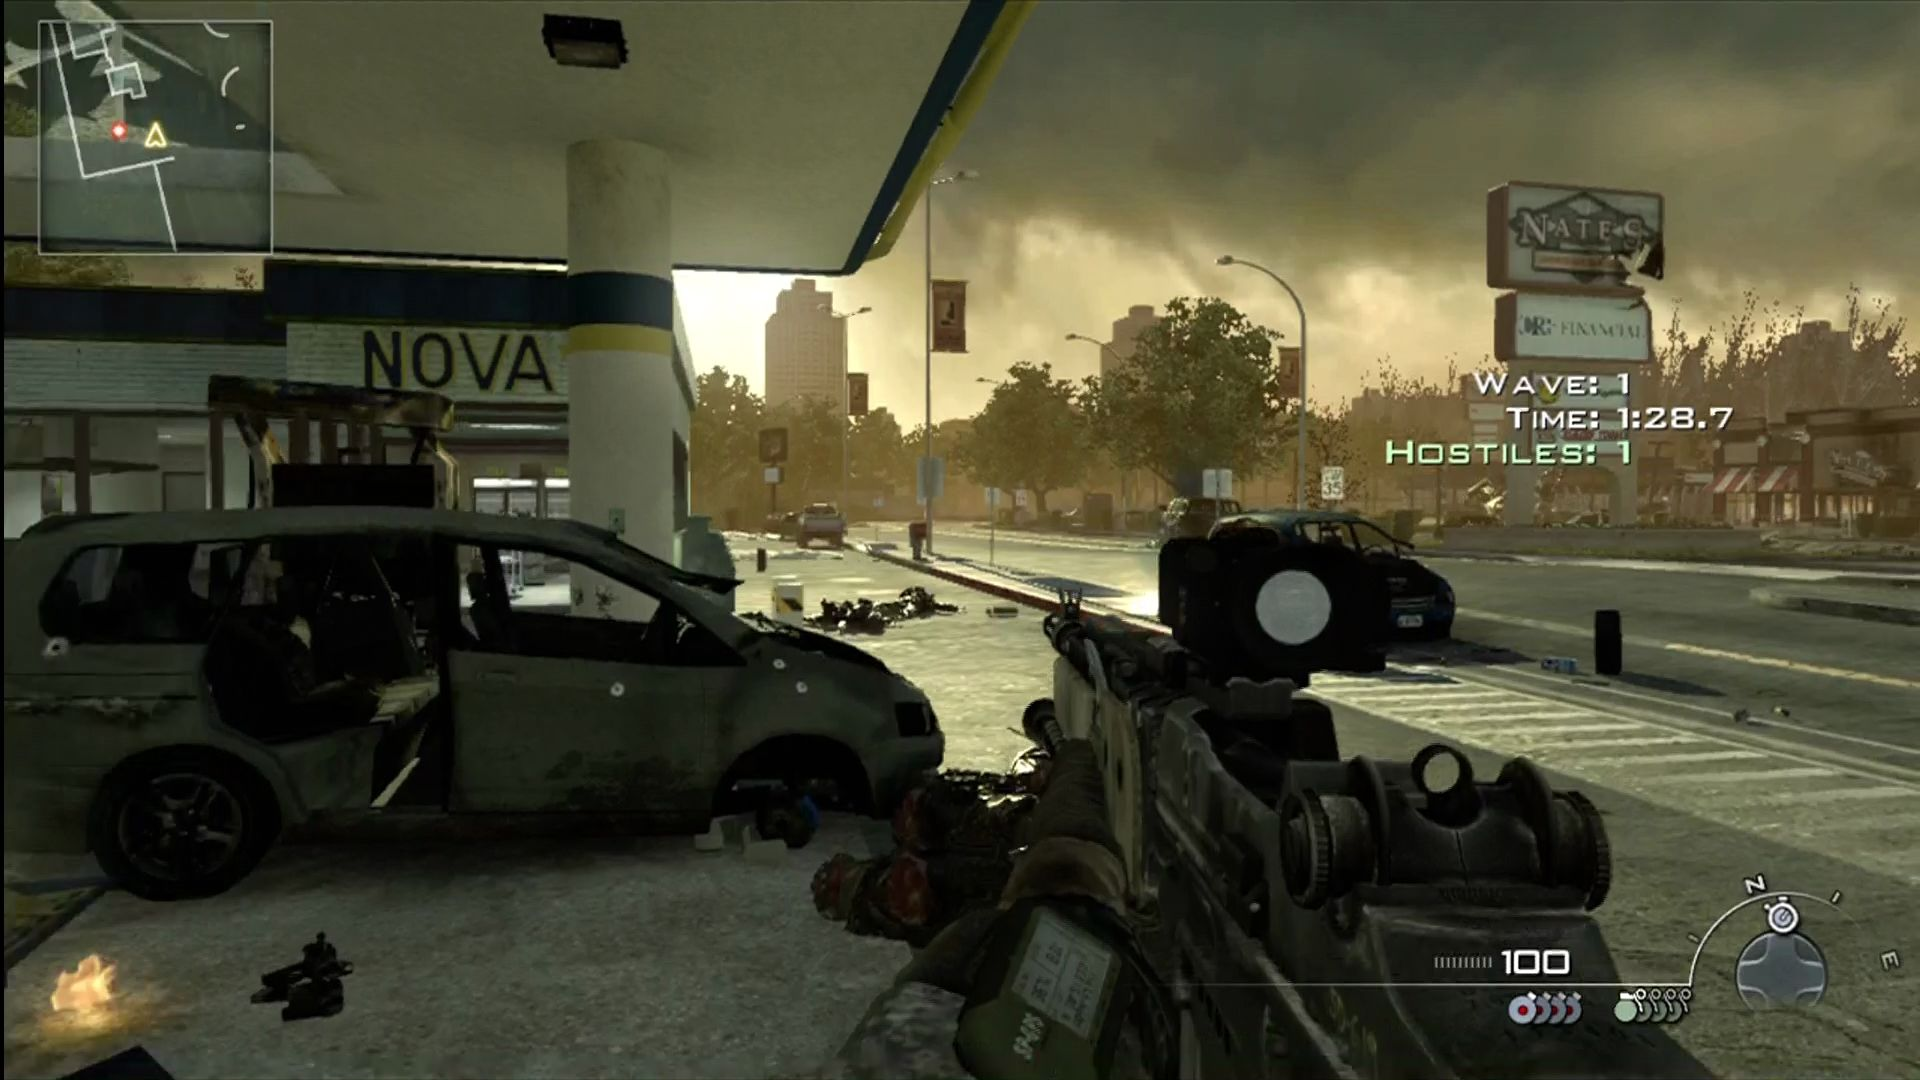 Call of Duty: Modern Warfare 2 Xbox 360 Invasion!